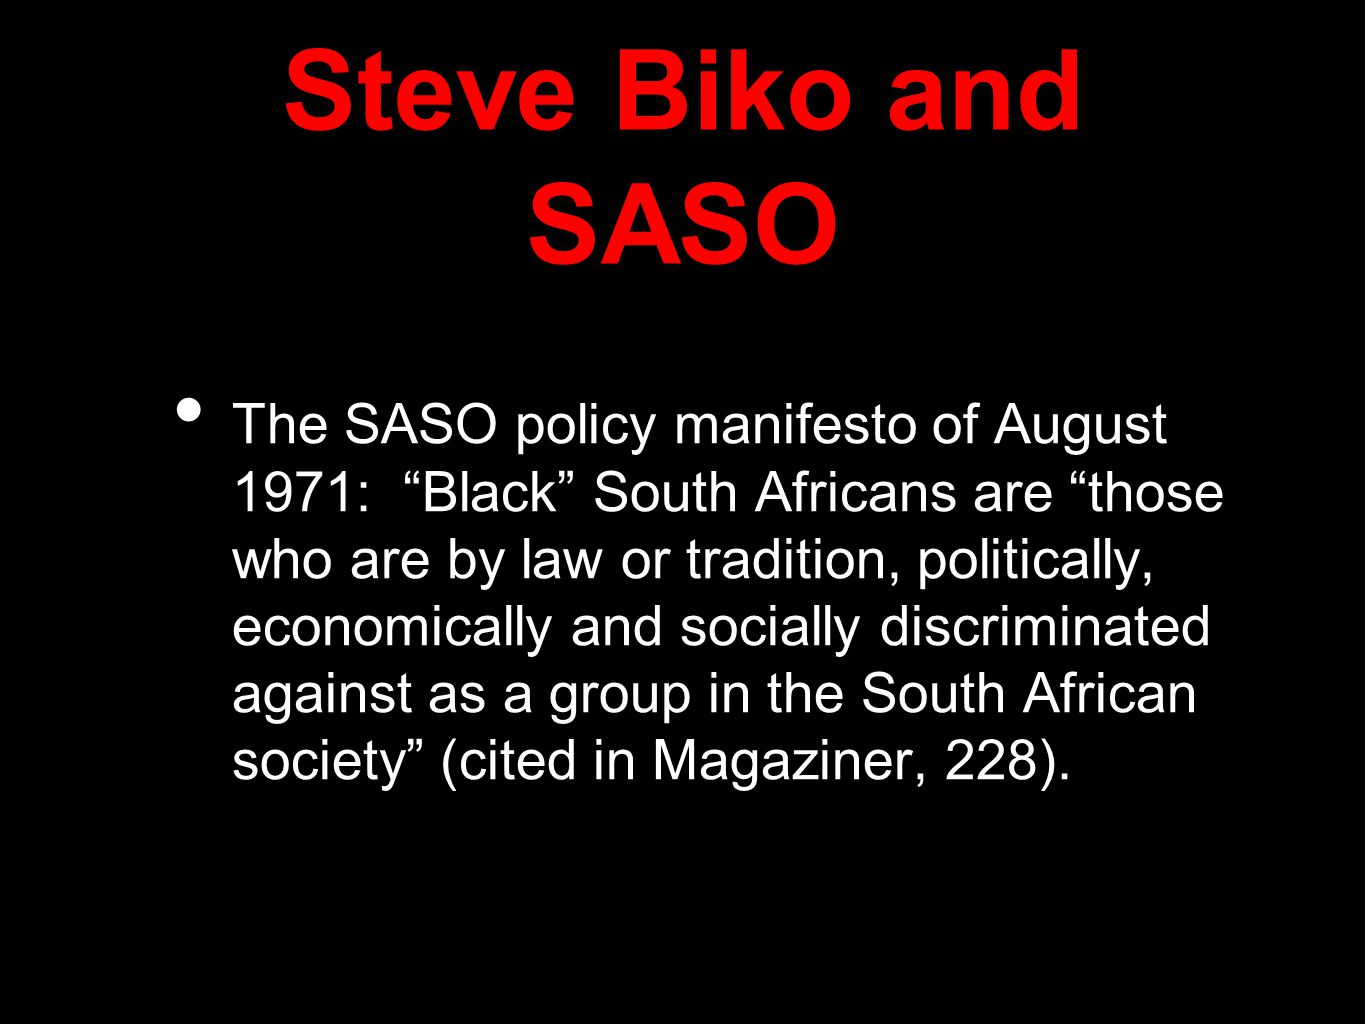 Steve Biko and SASO The SASO policy manifesto of August 1971: Black South Africans are those who are by law or tradition, politically, economically and socially discriminated against as a group in the South African society (cited in Magaziner, 228).